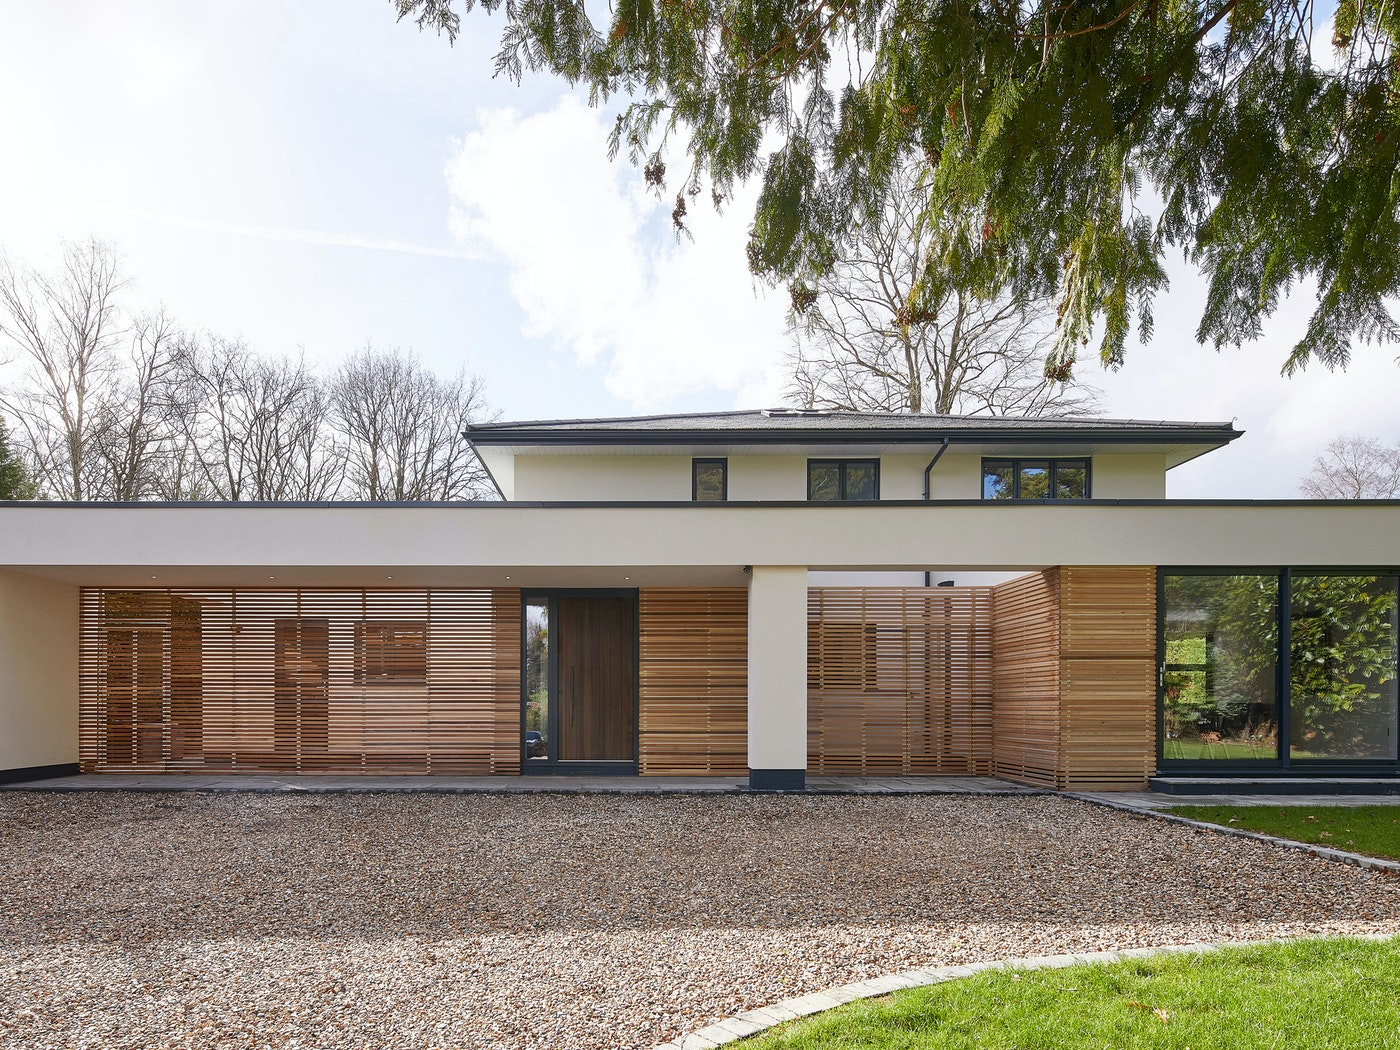 A wonderful example of modern architecture with a fumed oak wood front door